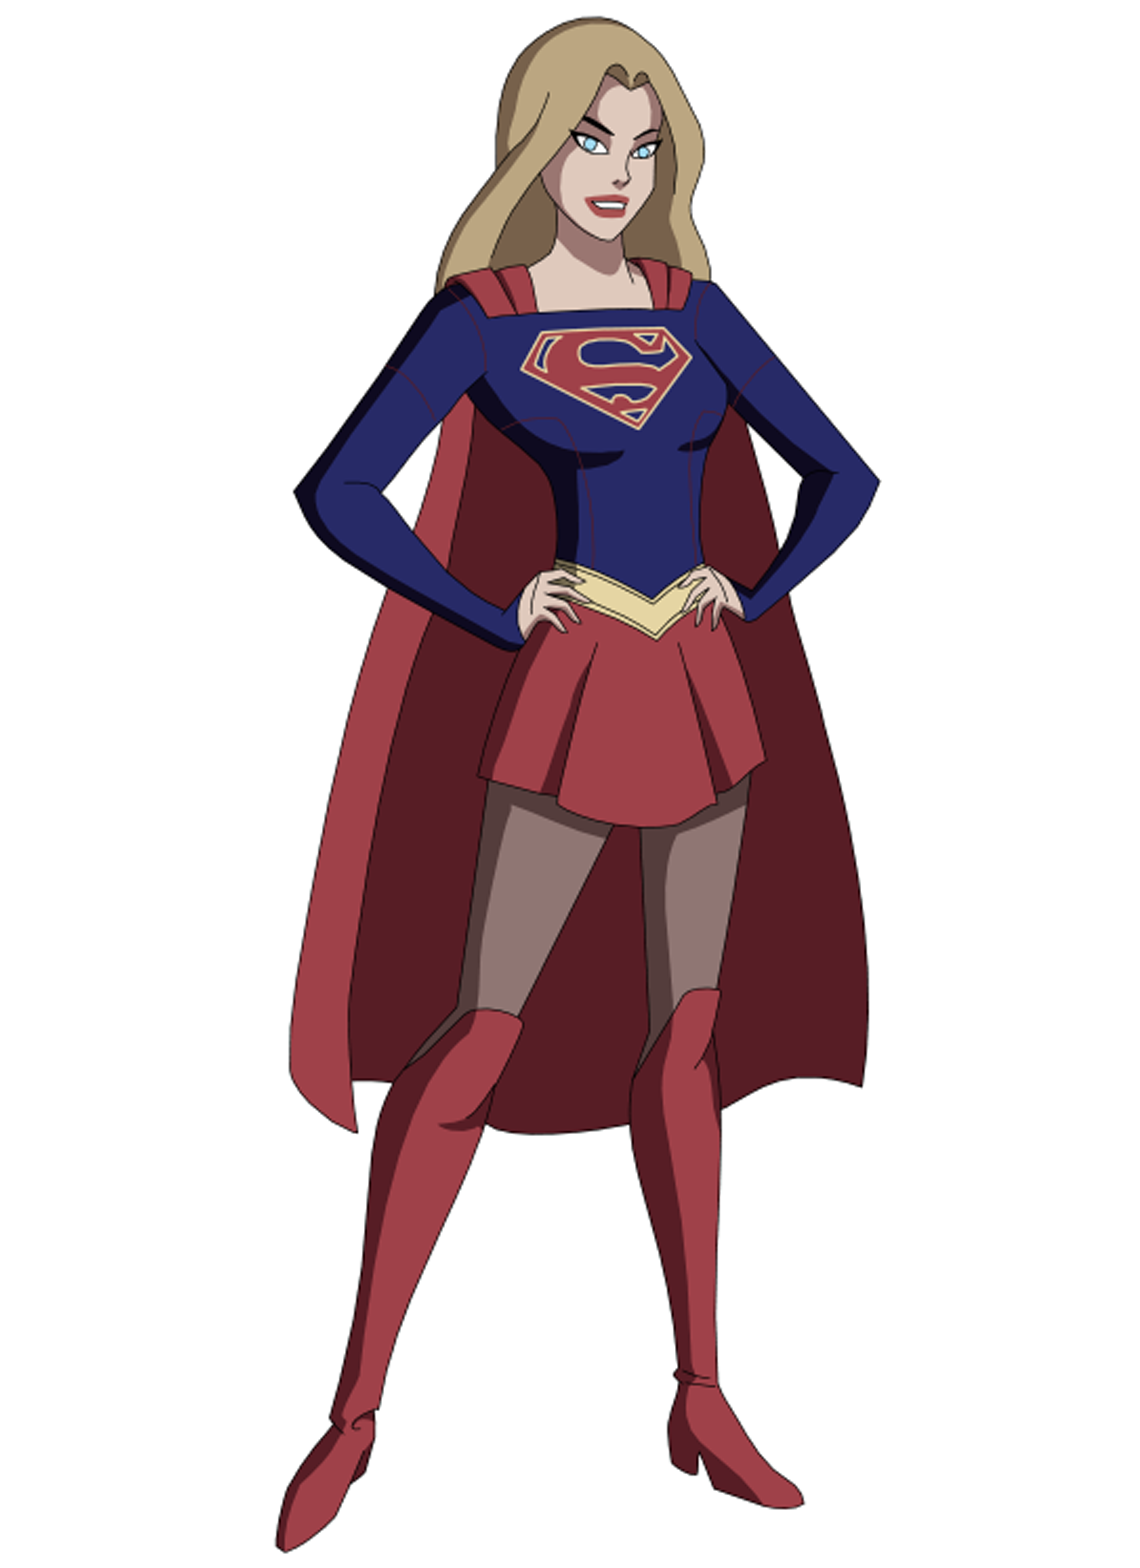 Supergirl illustration png. Pin by superman beyond